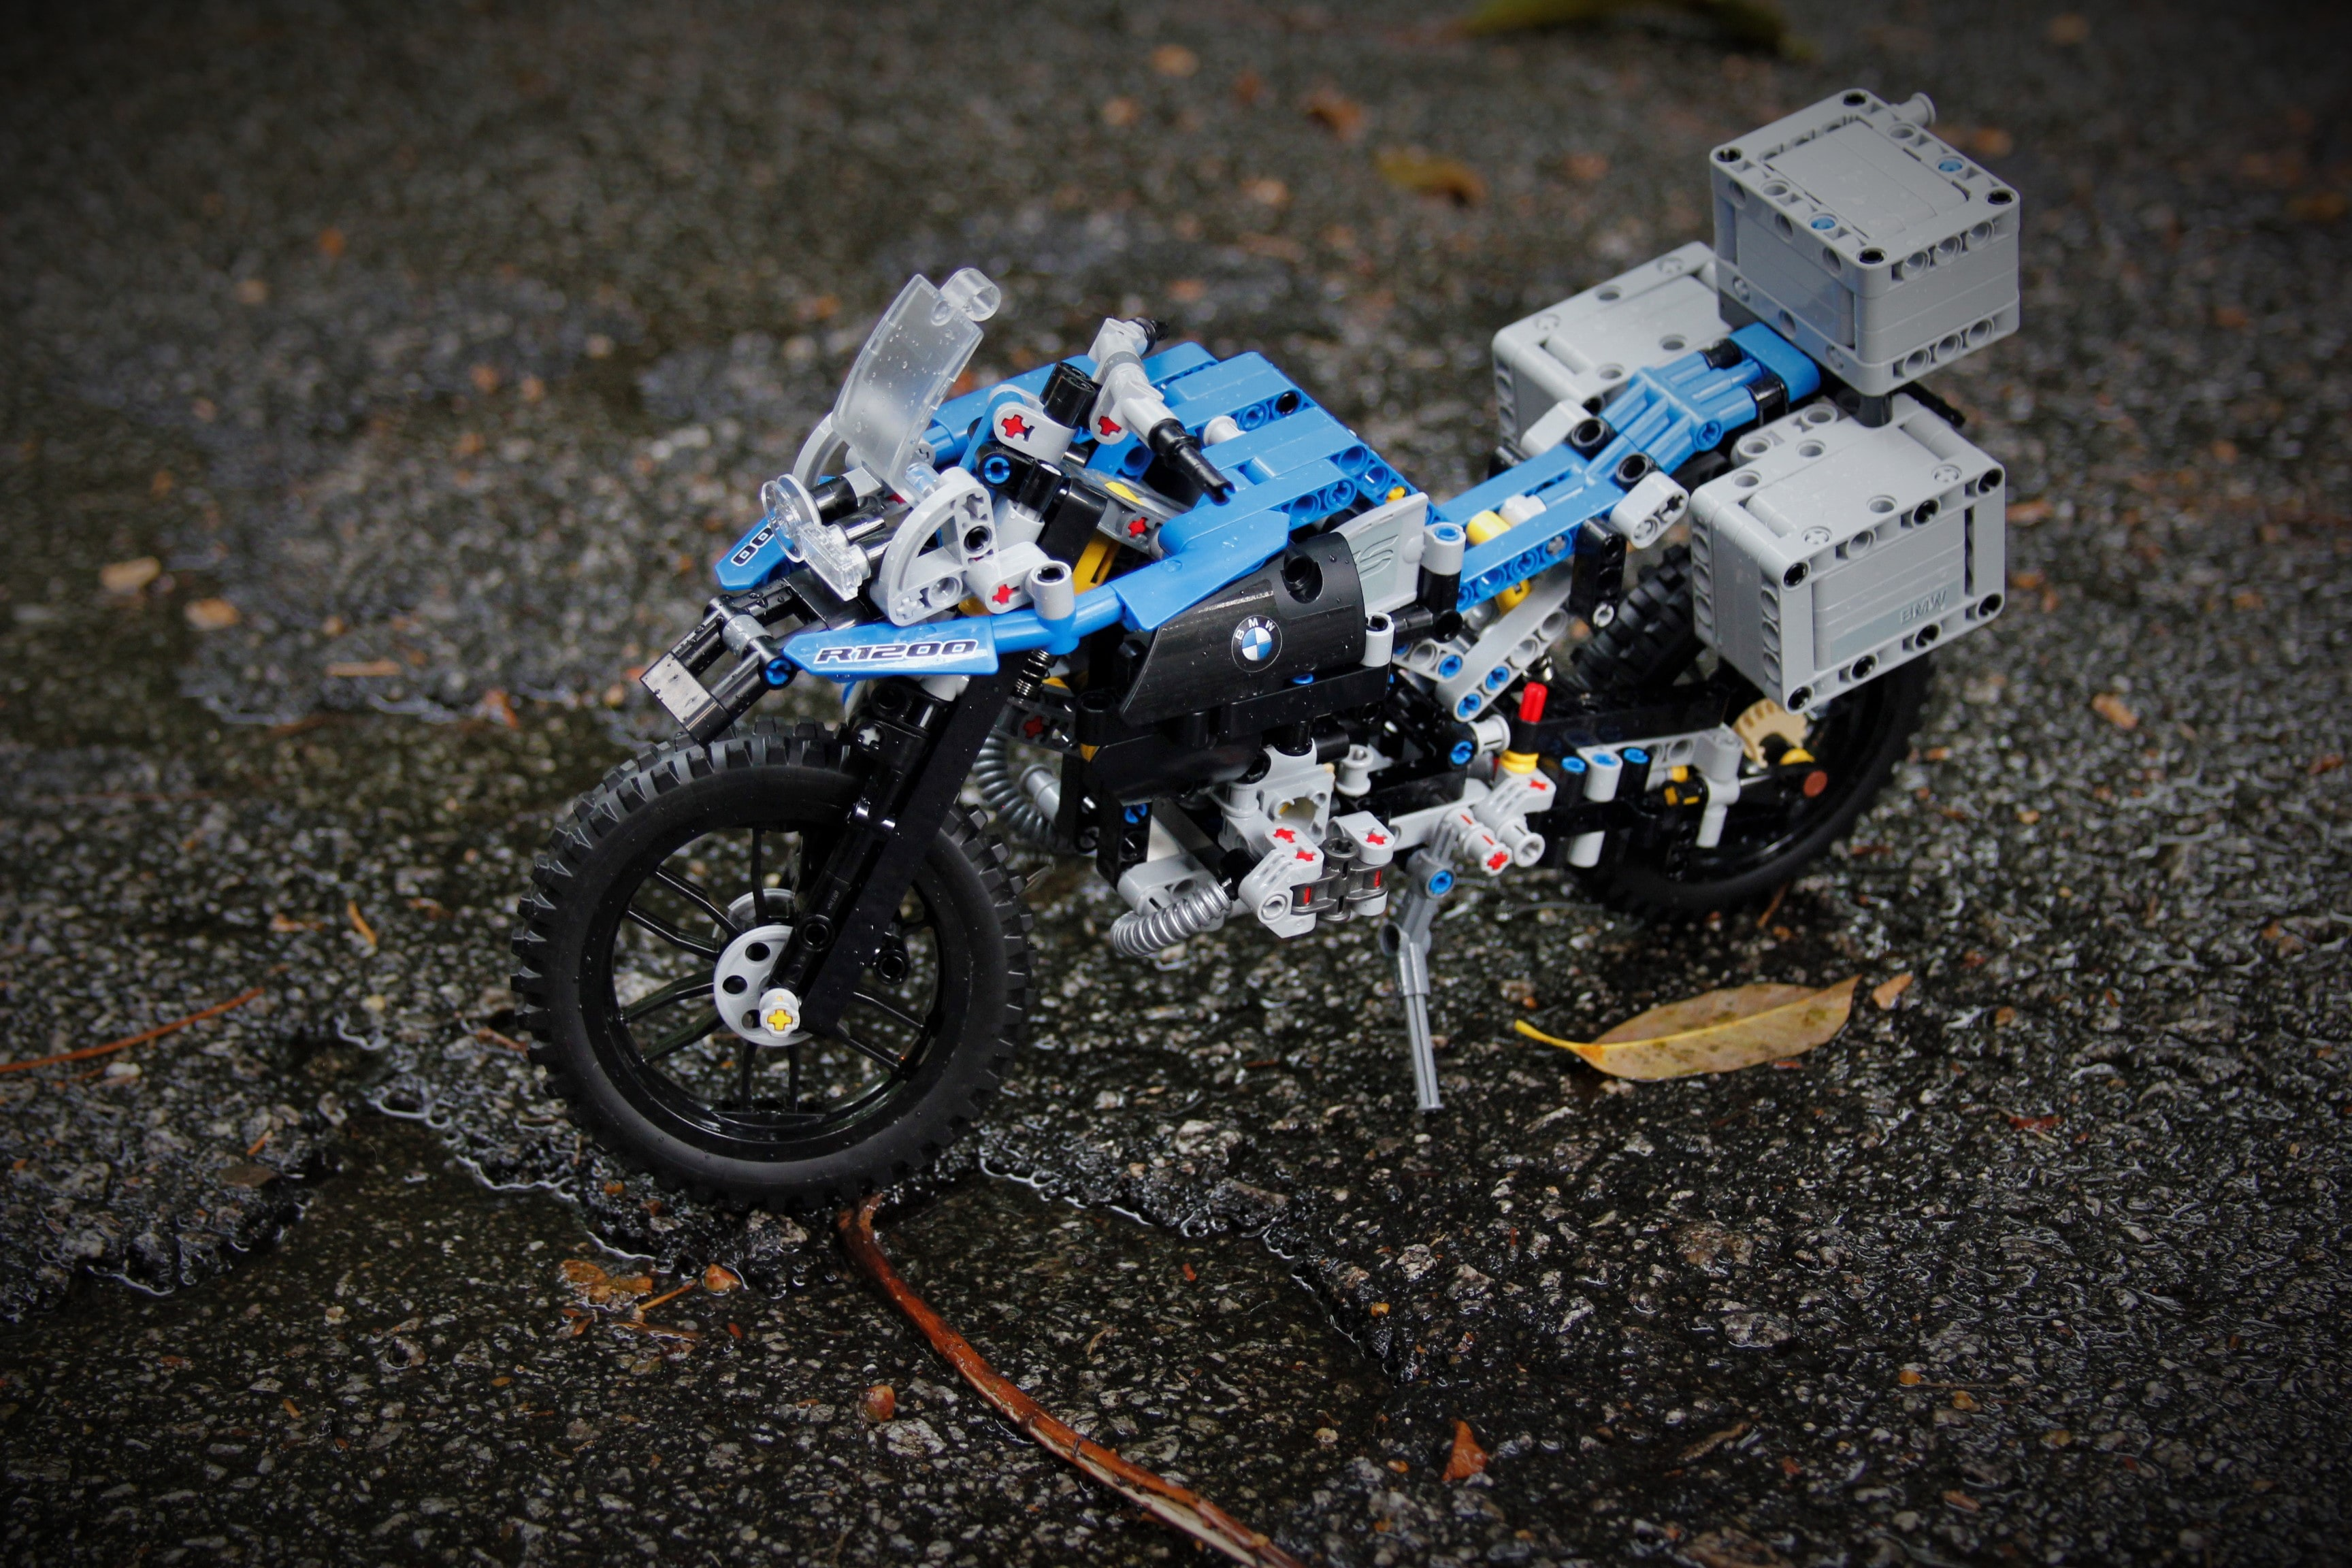 LEGO blue and gray motorcycle toy